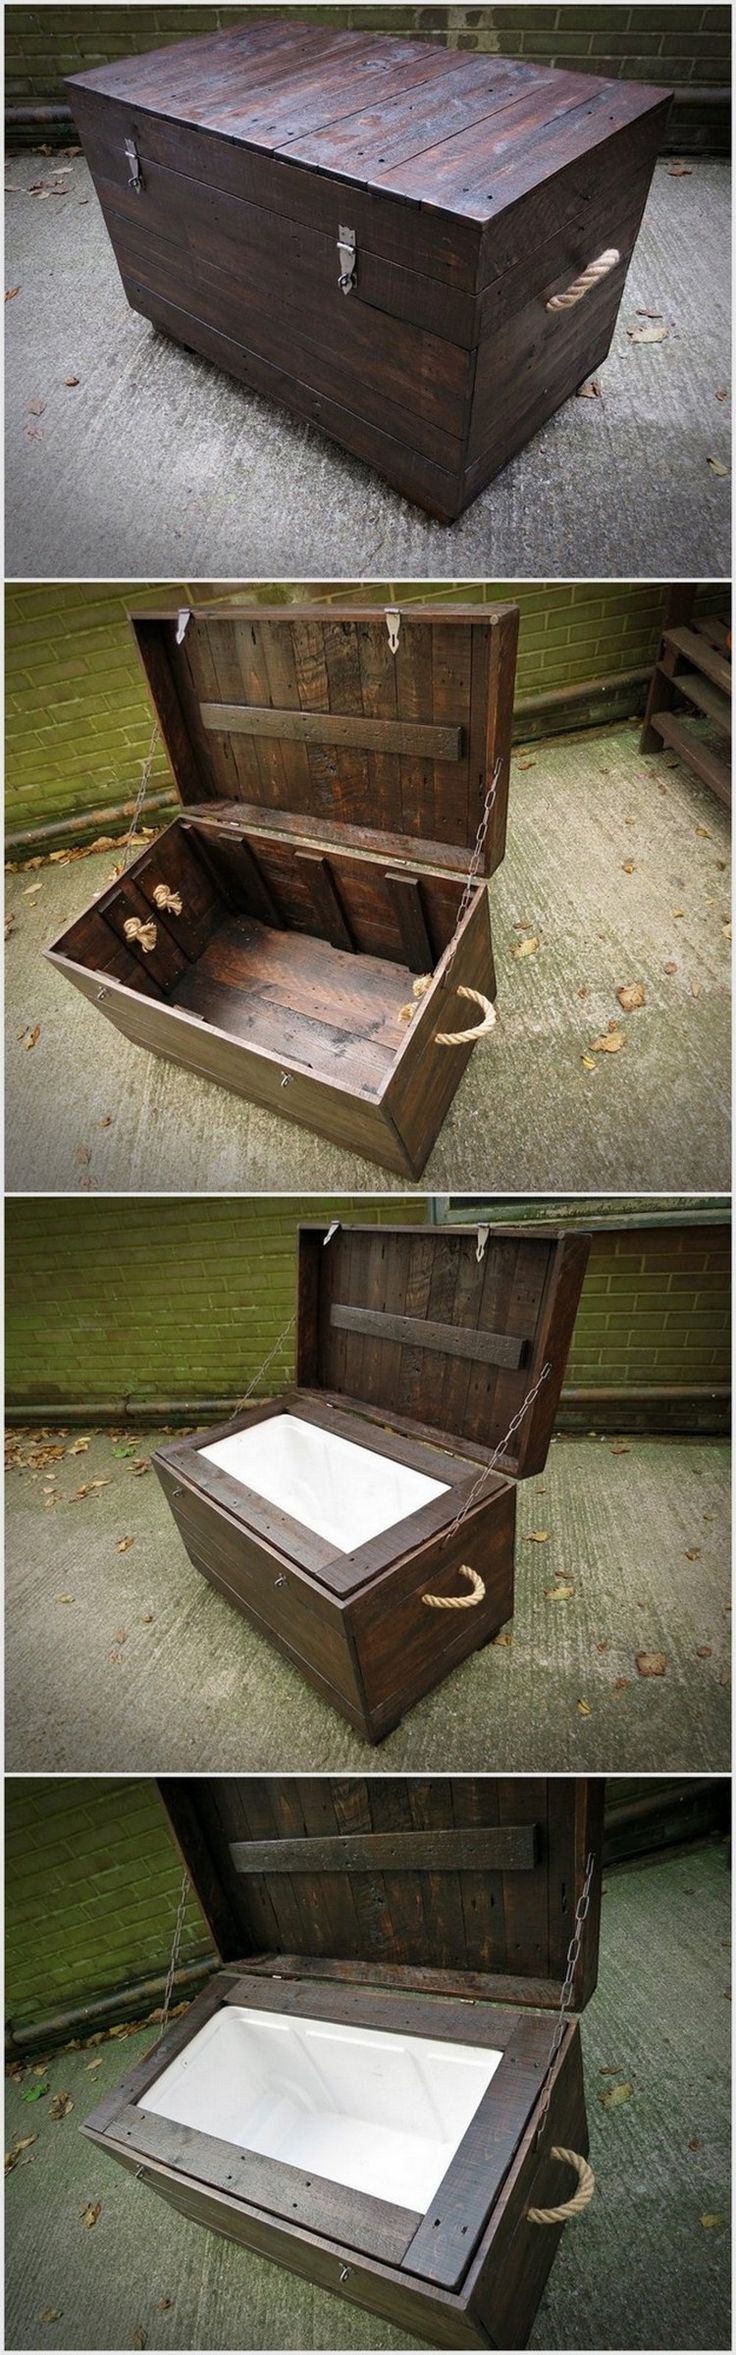 You can now create this big treasure box style from old wood pallets. We have placed holders along its sides to move it easily.